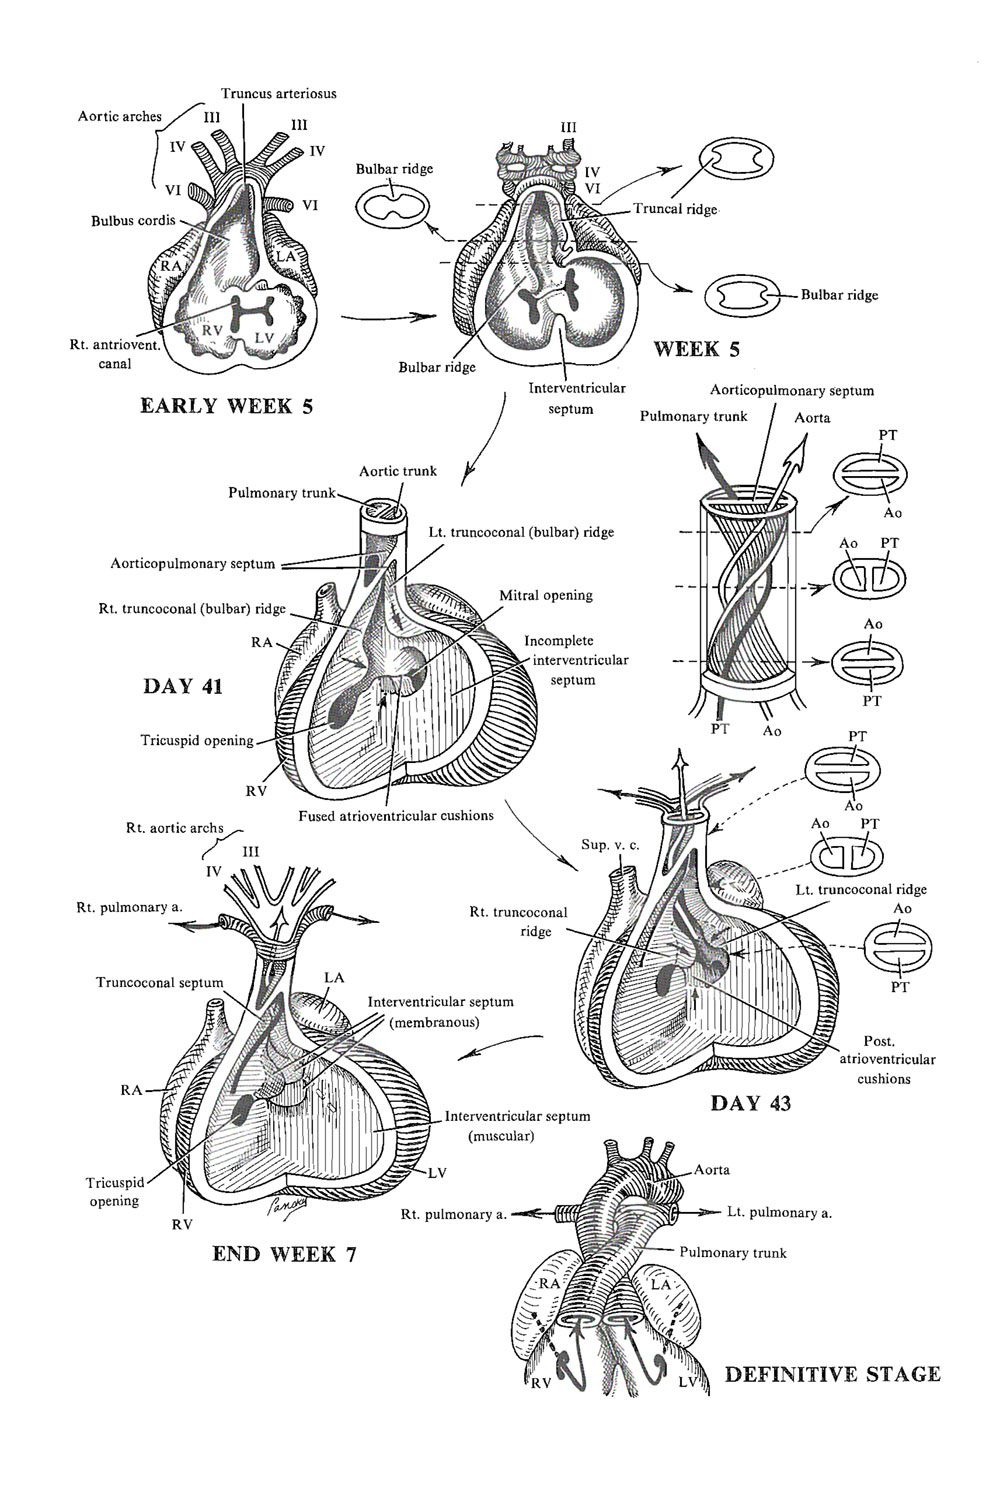 Chapter 120 Septation Of Ventricles Truncus Arteriosus And Conus